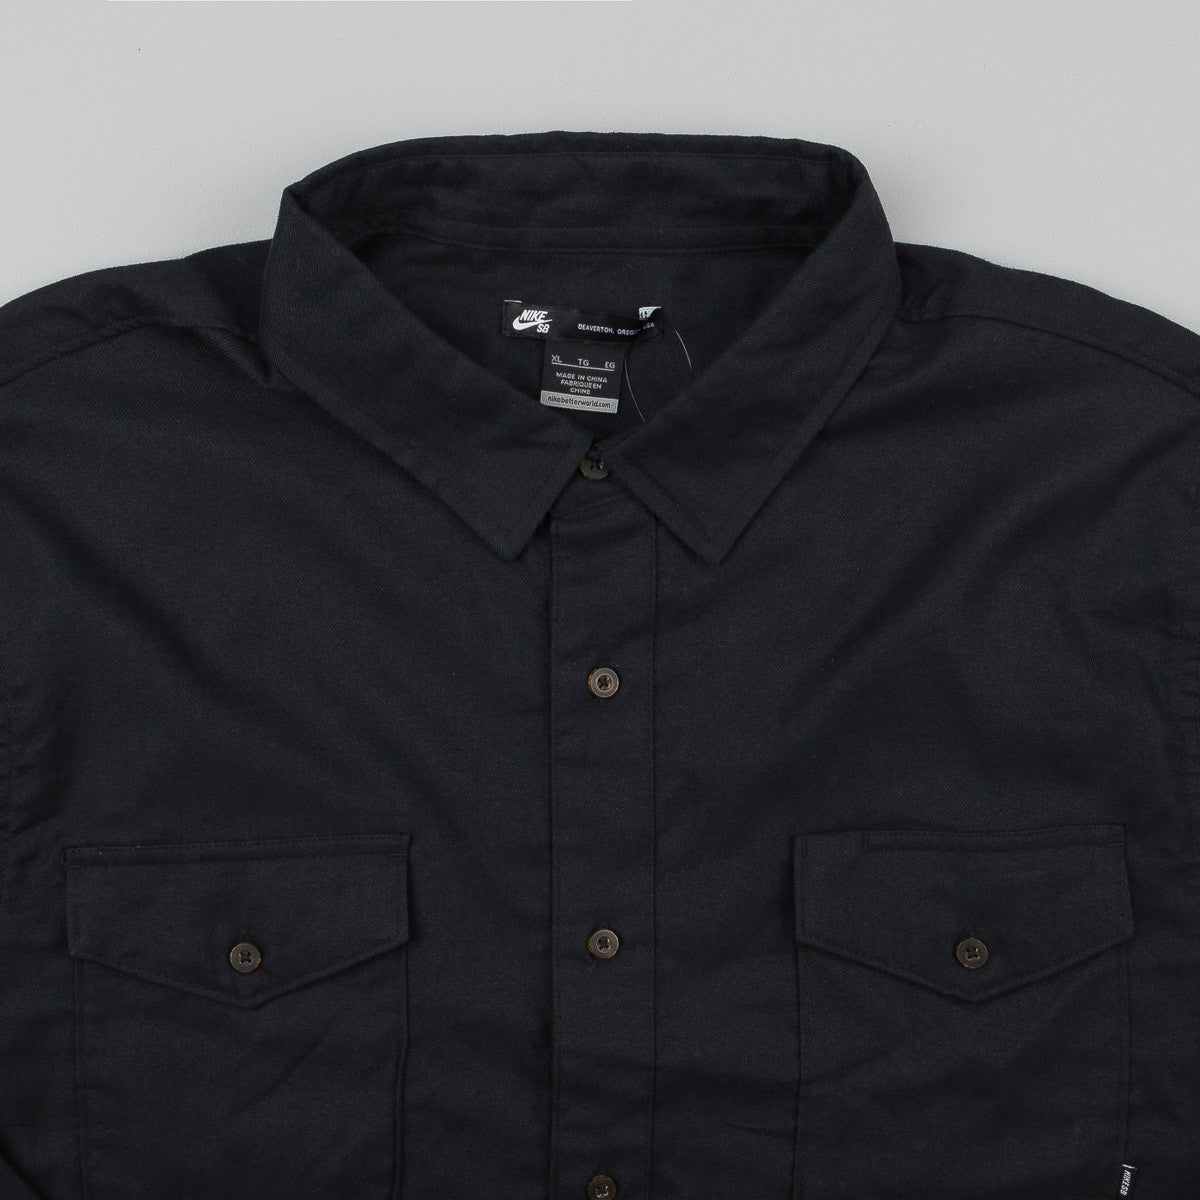 Nike SB Flagrant Flannel Long Sleeve Shirt - Black